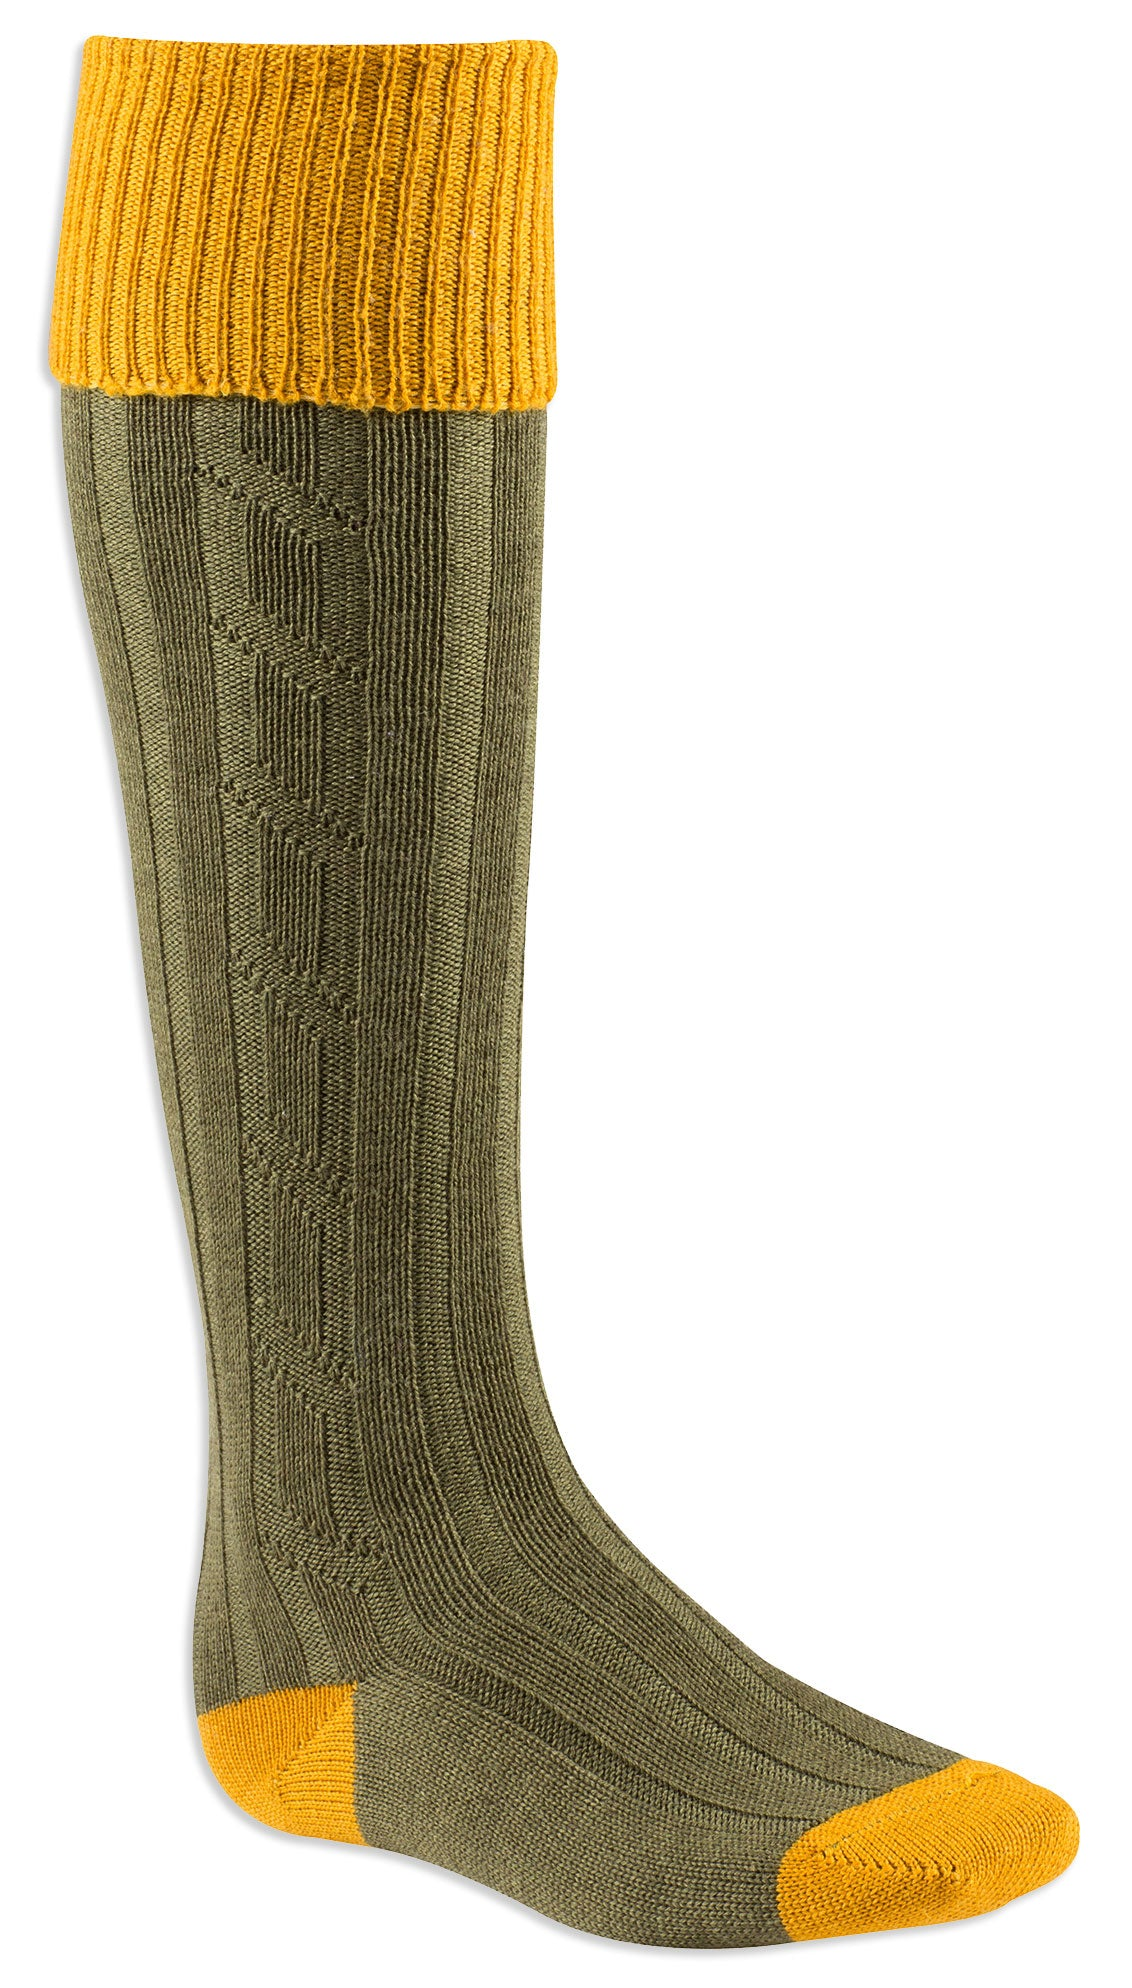 Gold and olive Contrast Heel & Toe Shooting Sock by Alan Paine